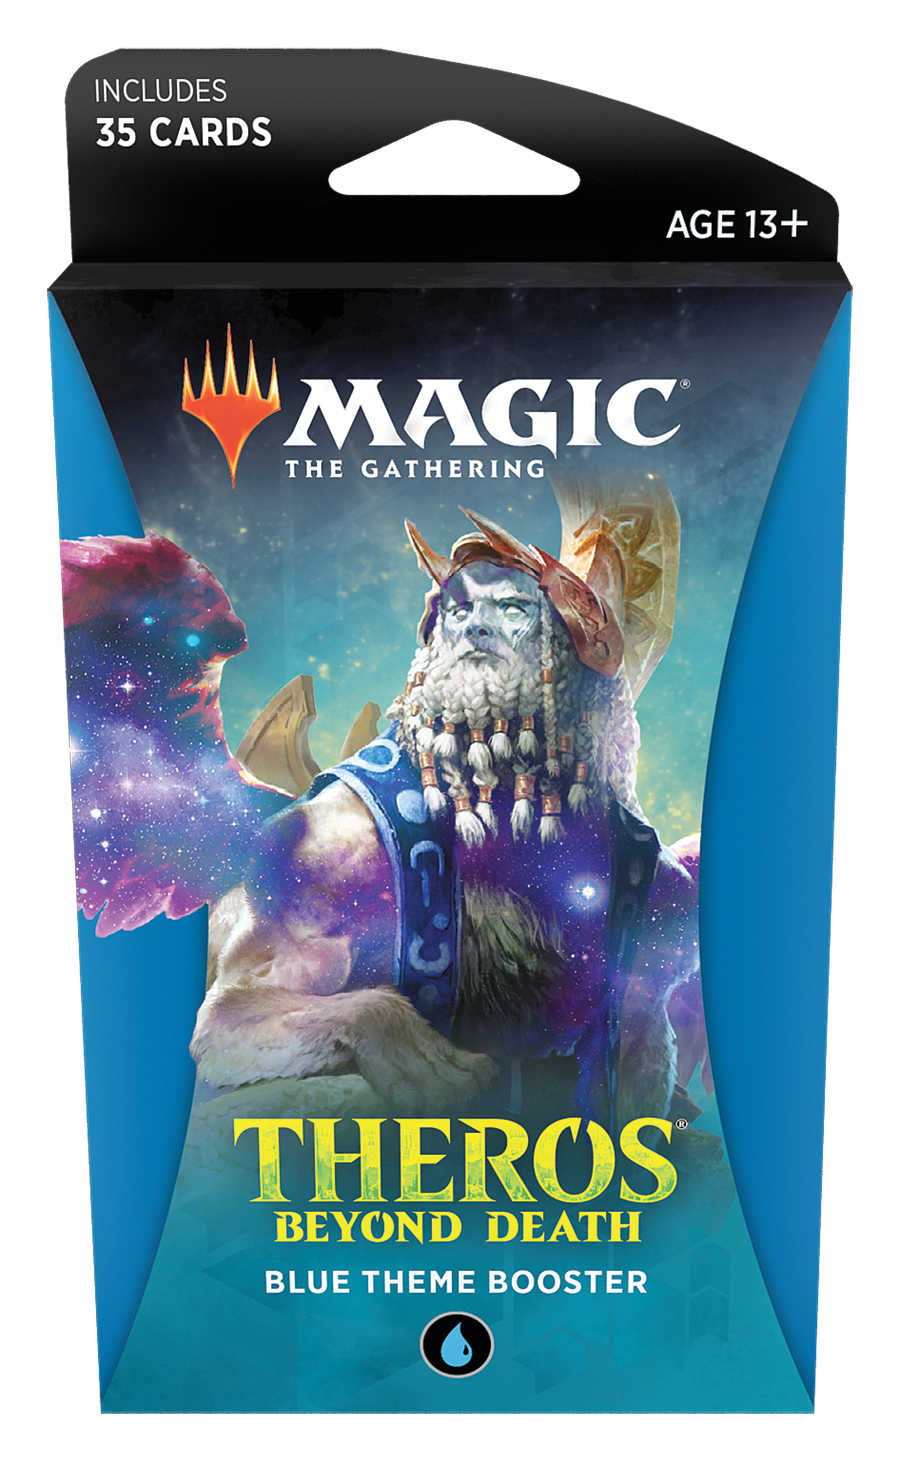 Magic The Gathering: Theros Beyond Death Theme Booster- Blue image